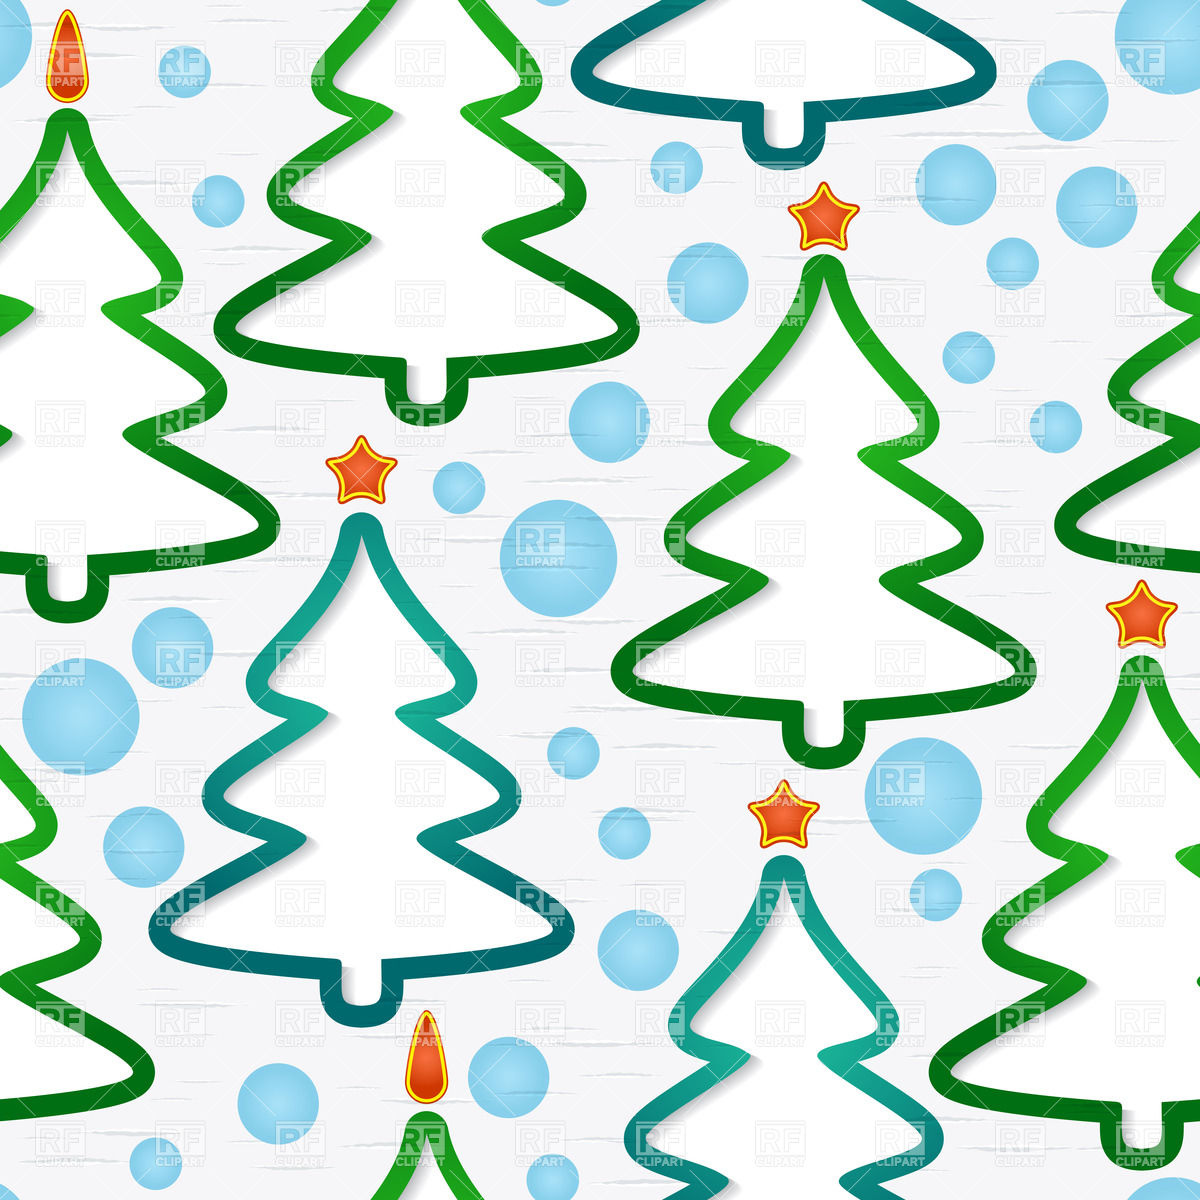 Seamless pattern with abstract Christmas trees Vector Image #33800.